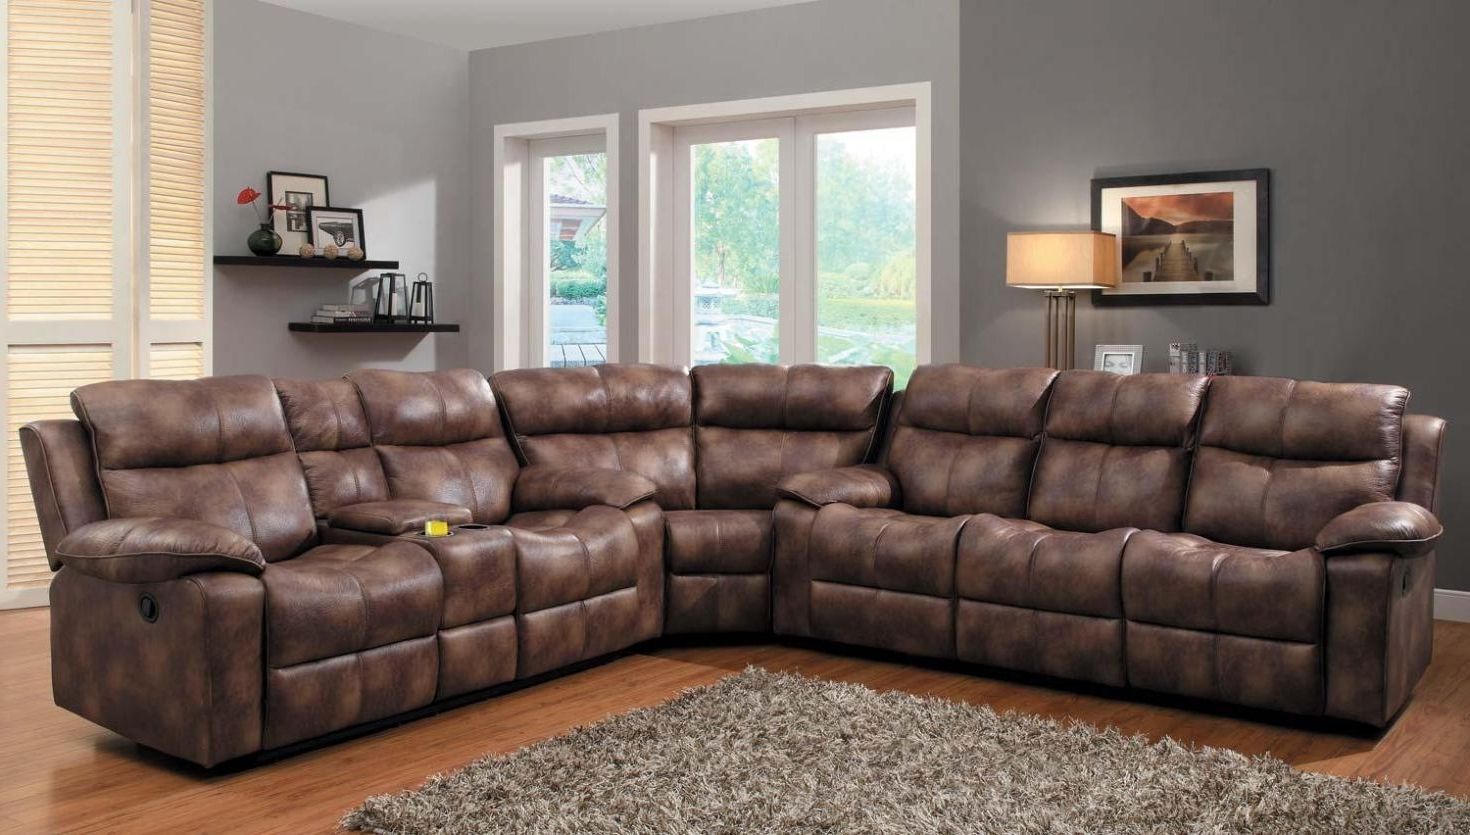 Clearance Sectional Sofas For Well Liked Genuine Leather Sectional Sectionals Sofas Top Grain Leather Sofa (View 4 of 15)